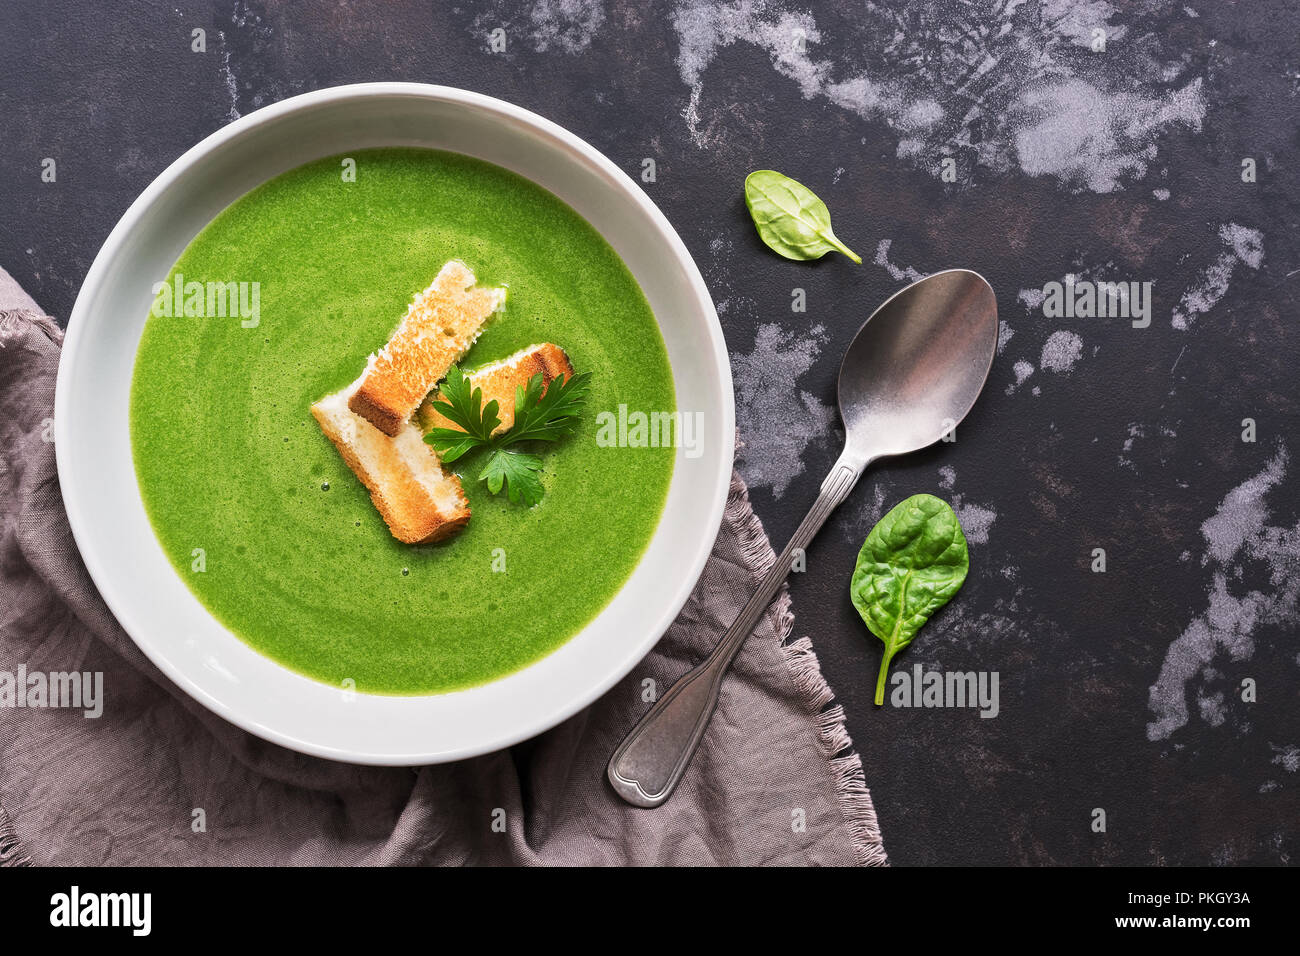 Green vegetable cream soup with spinach on a dark concrete background. Dietary healthy lunch or dinner. Top view, copy space. Stock Photo